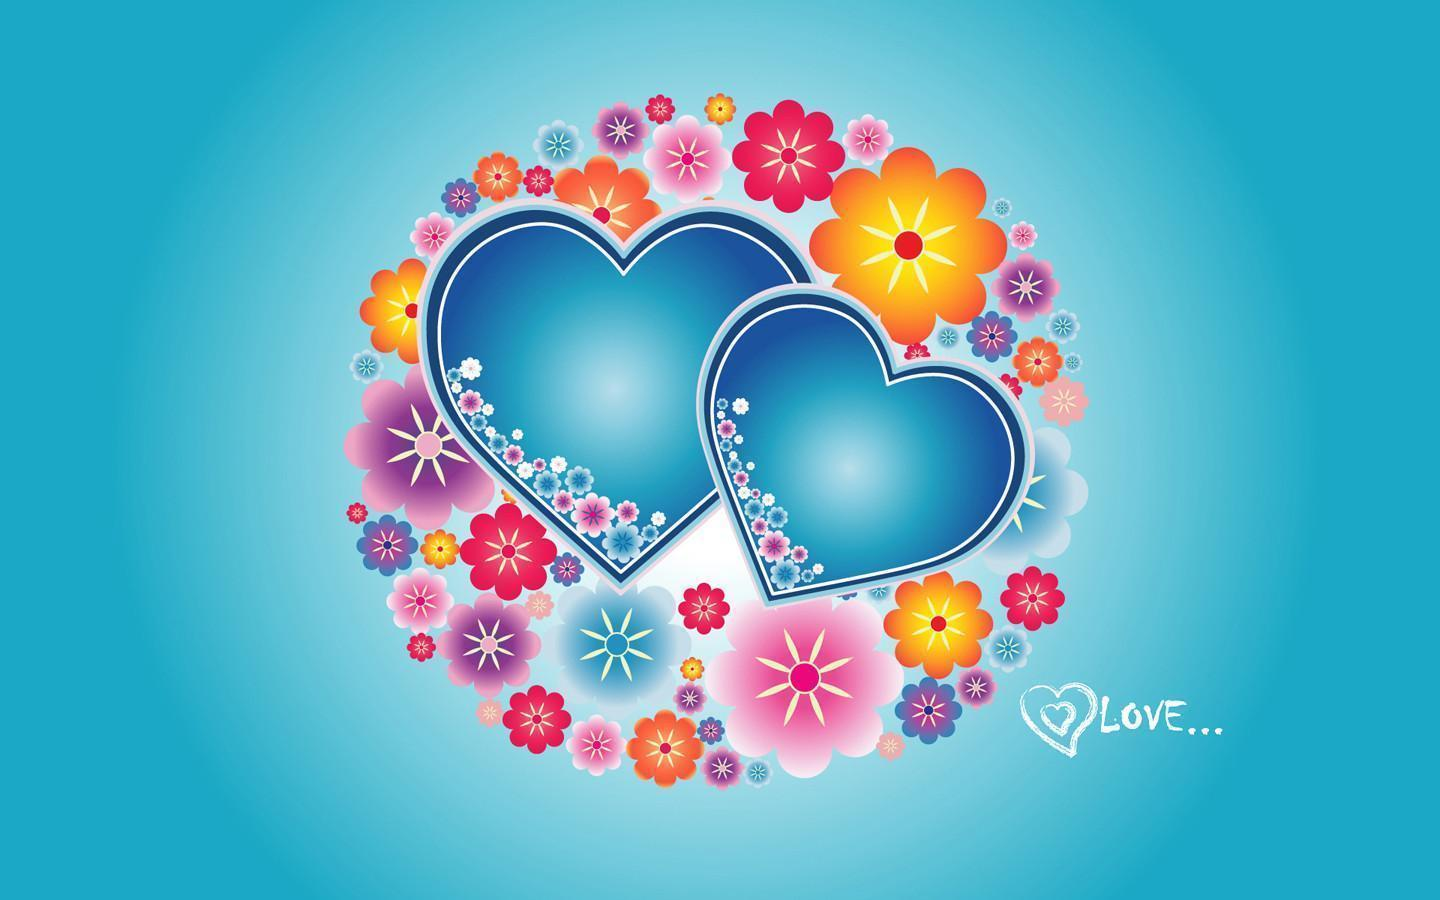 Love comments Wallpaper : Love Heart Wallpapers HD - Wallpaper cave